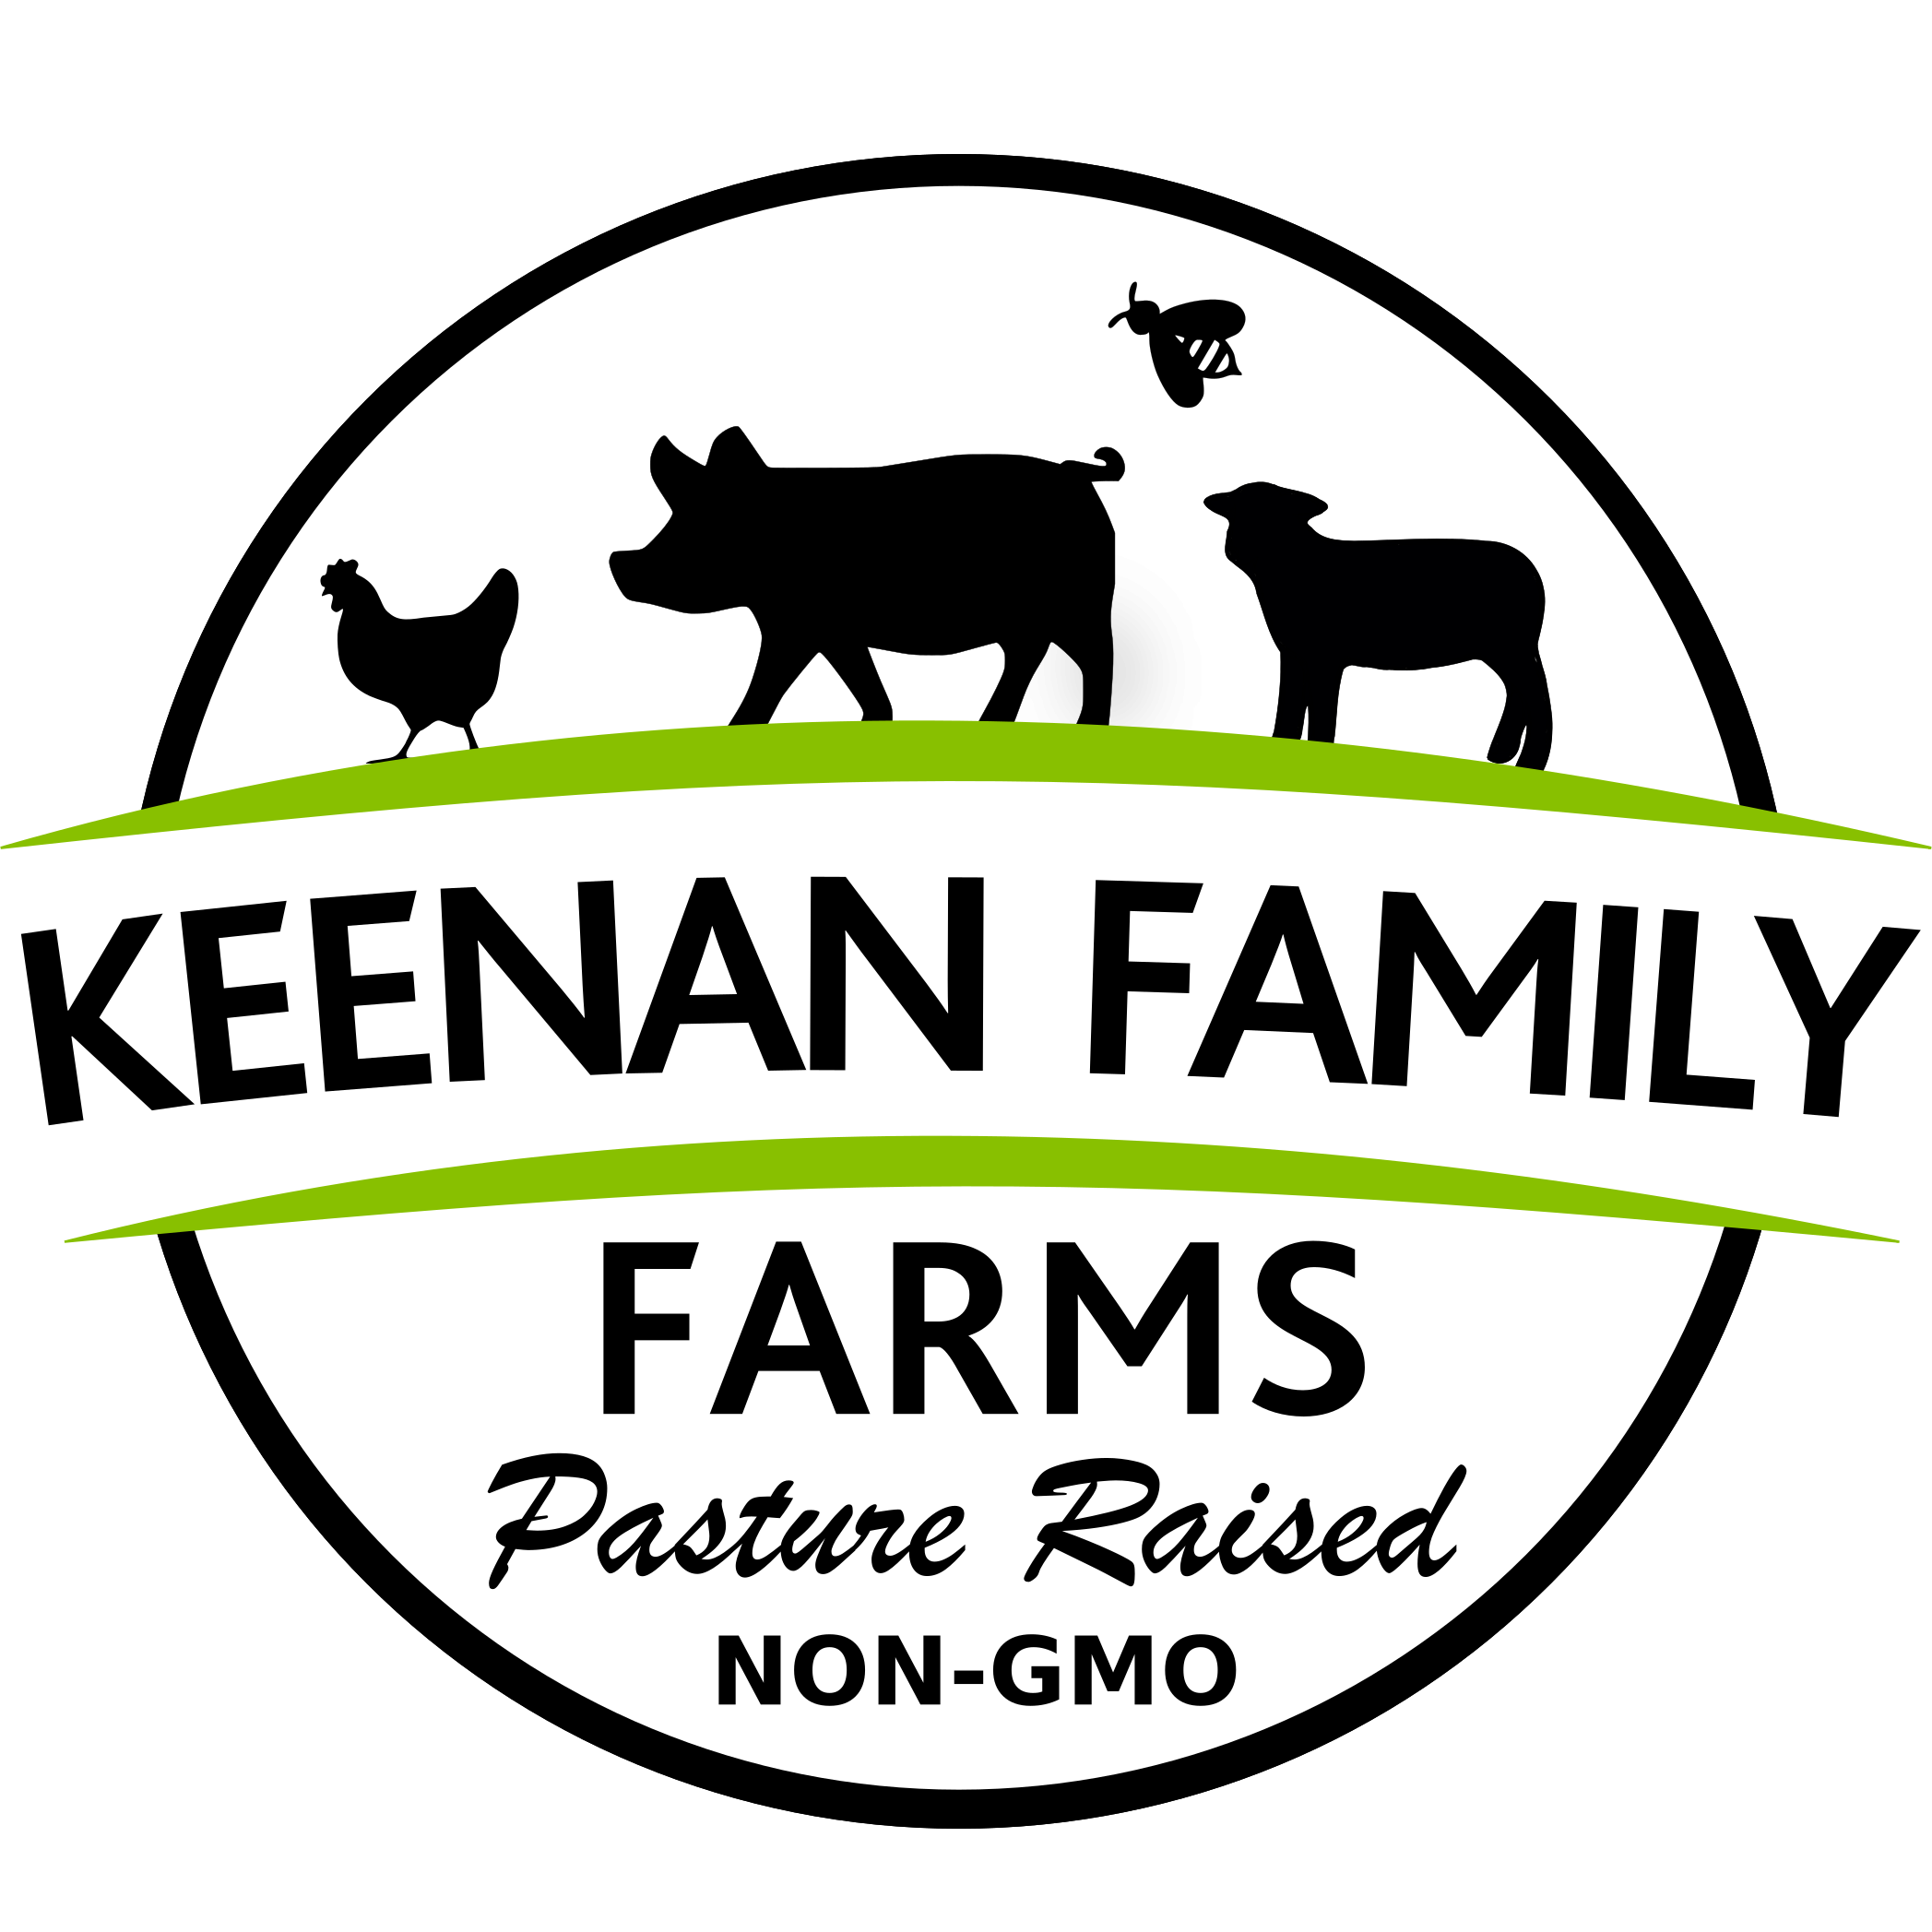 Keenan Family Farms